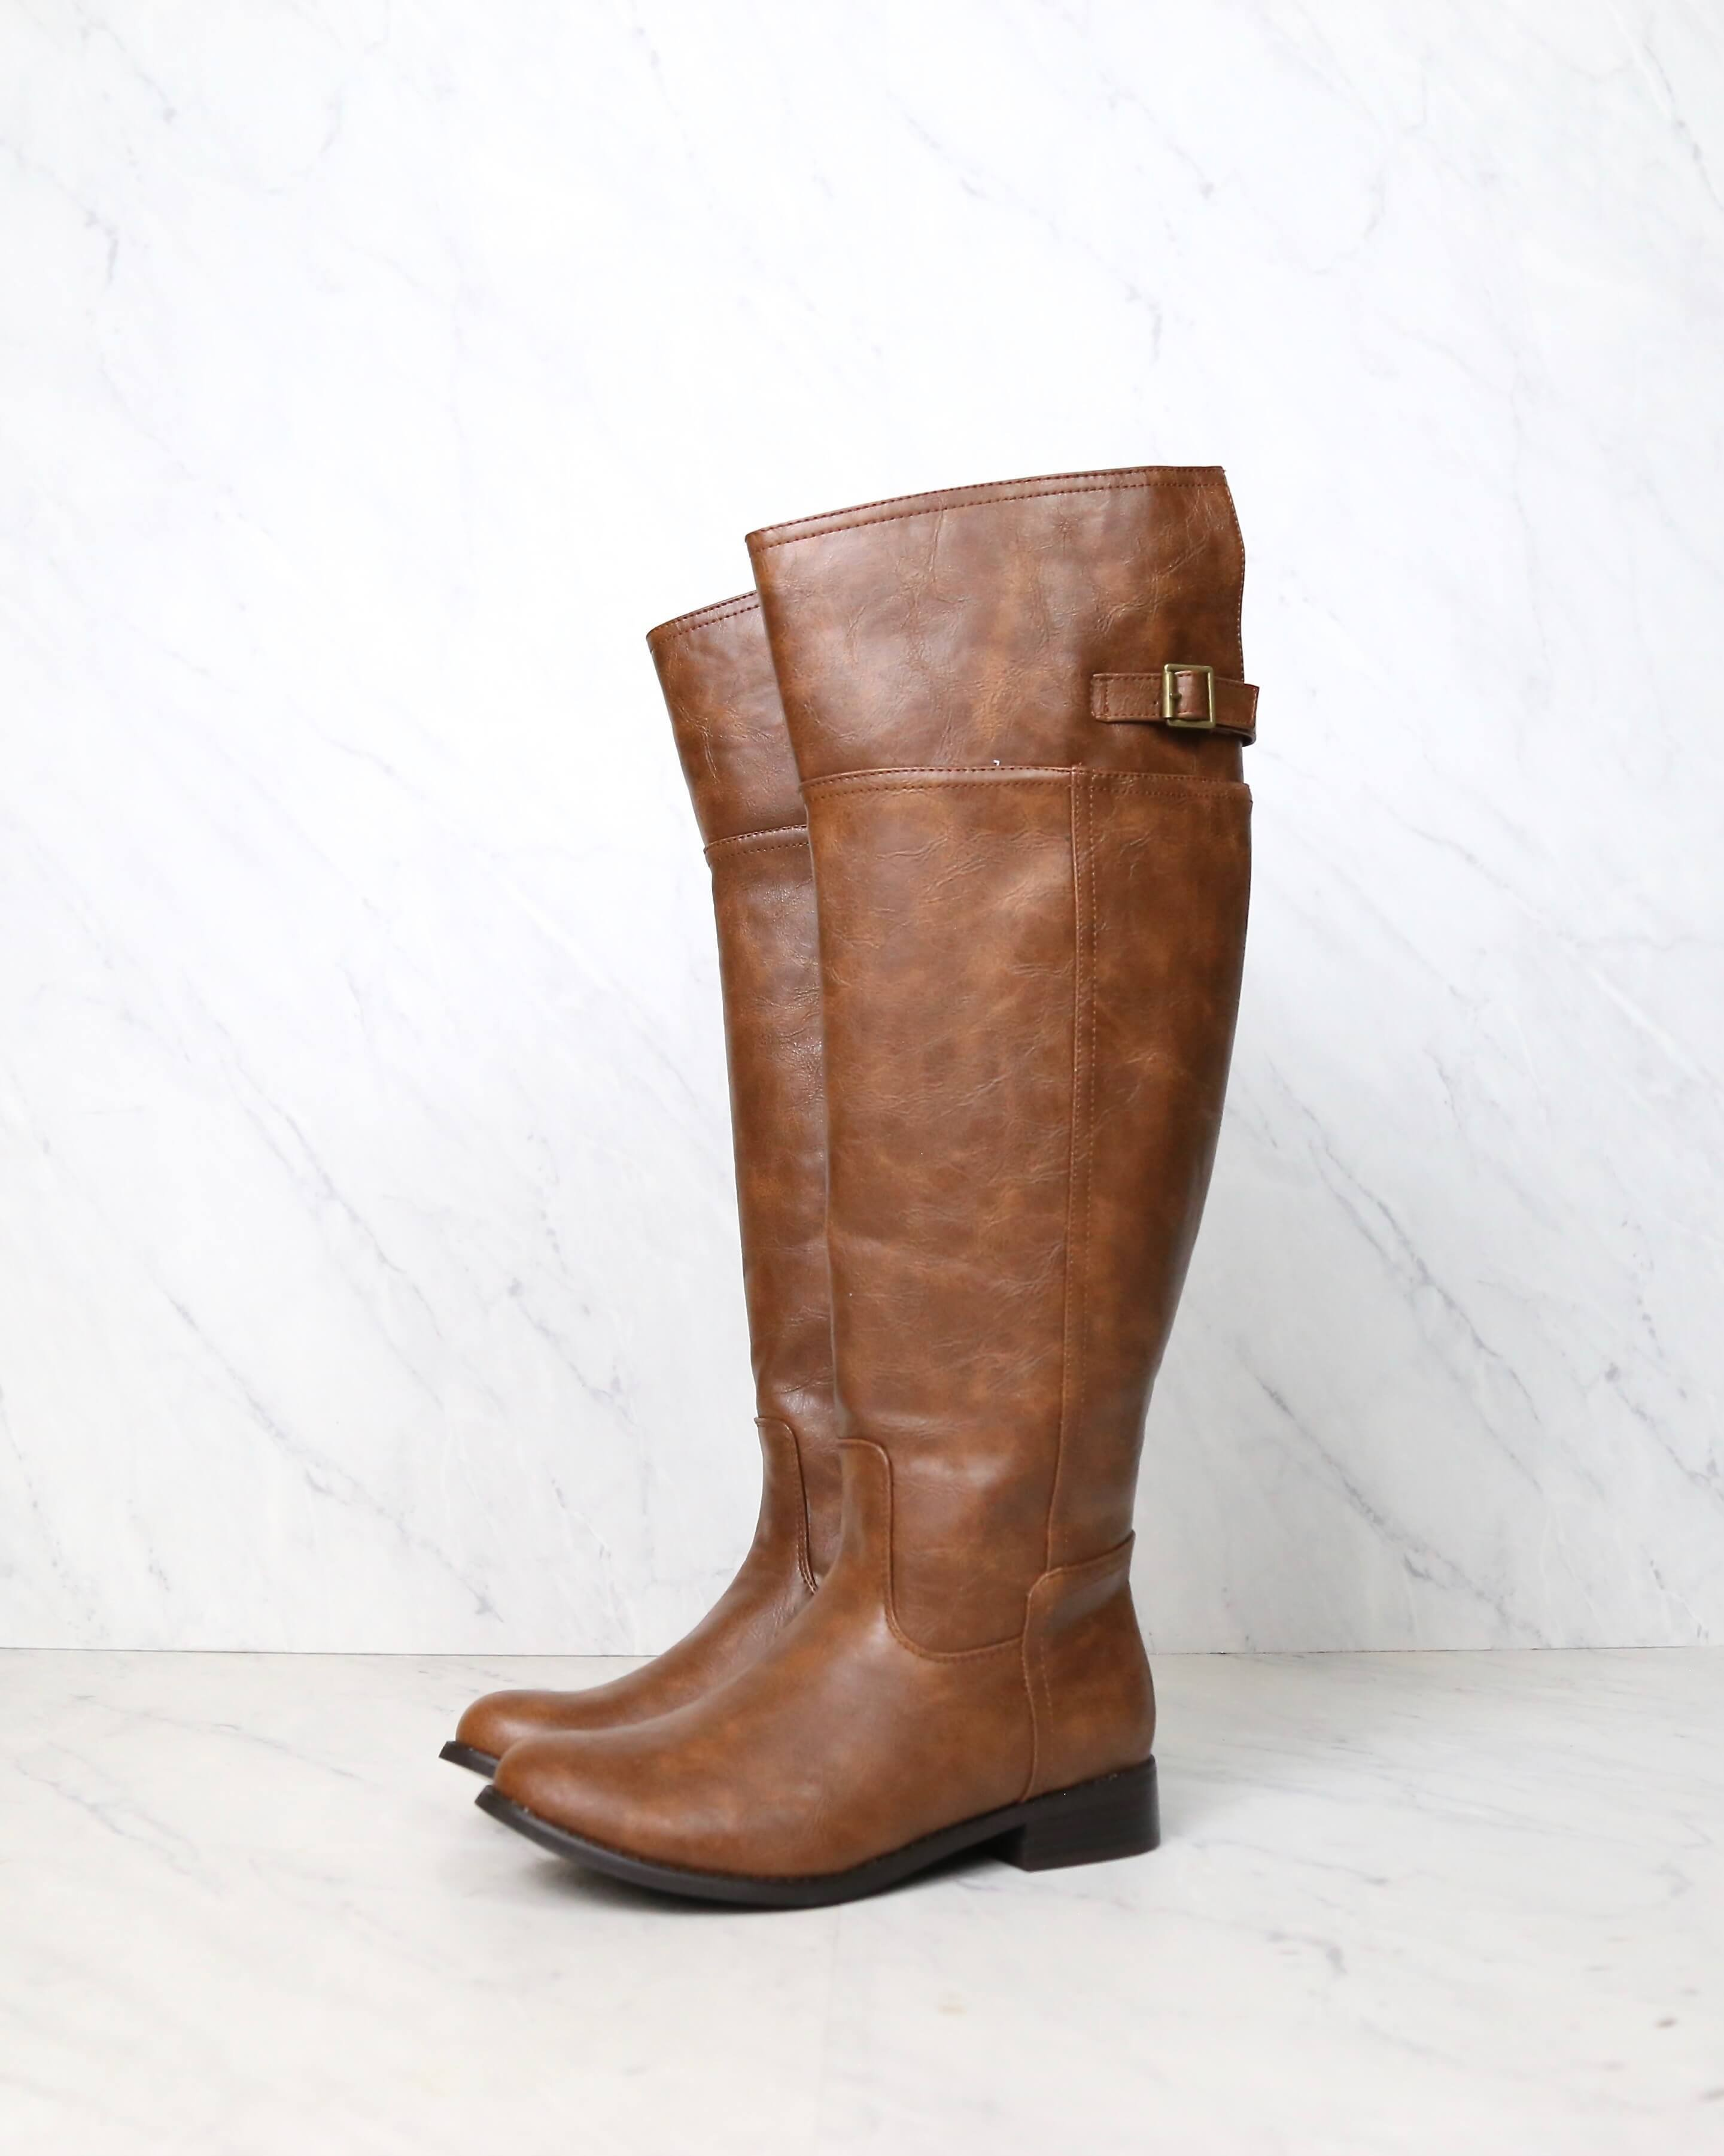 Image of Rider's Women's Distressed Tall Riding Boots in Tan